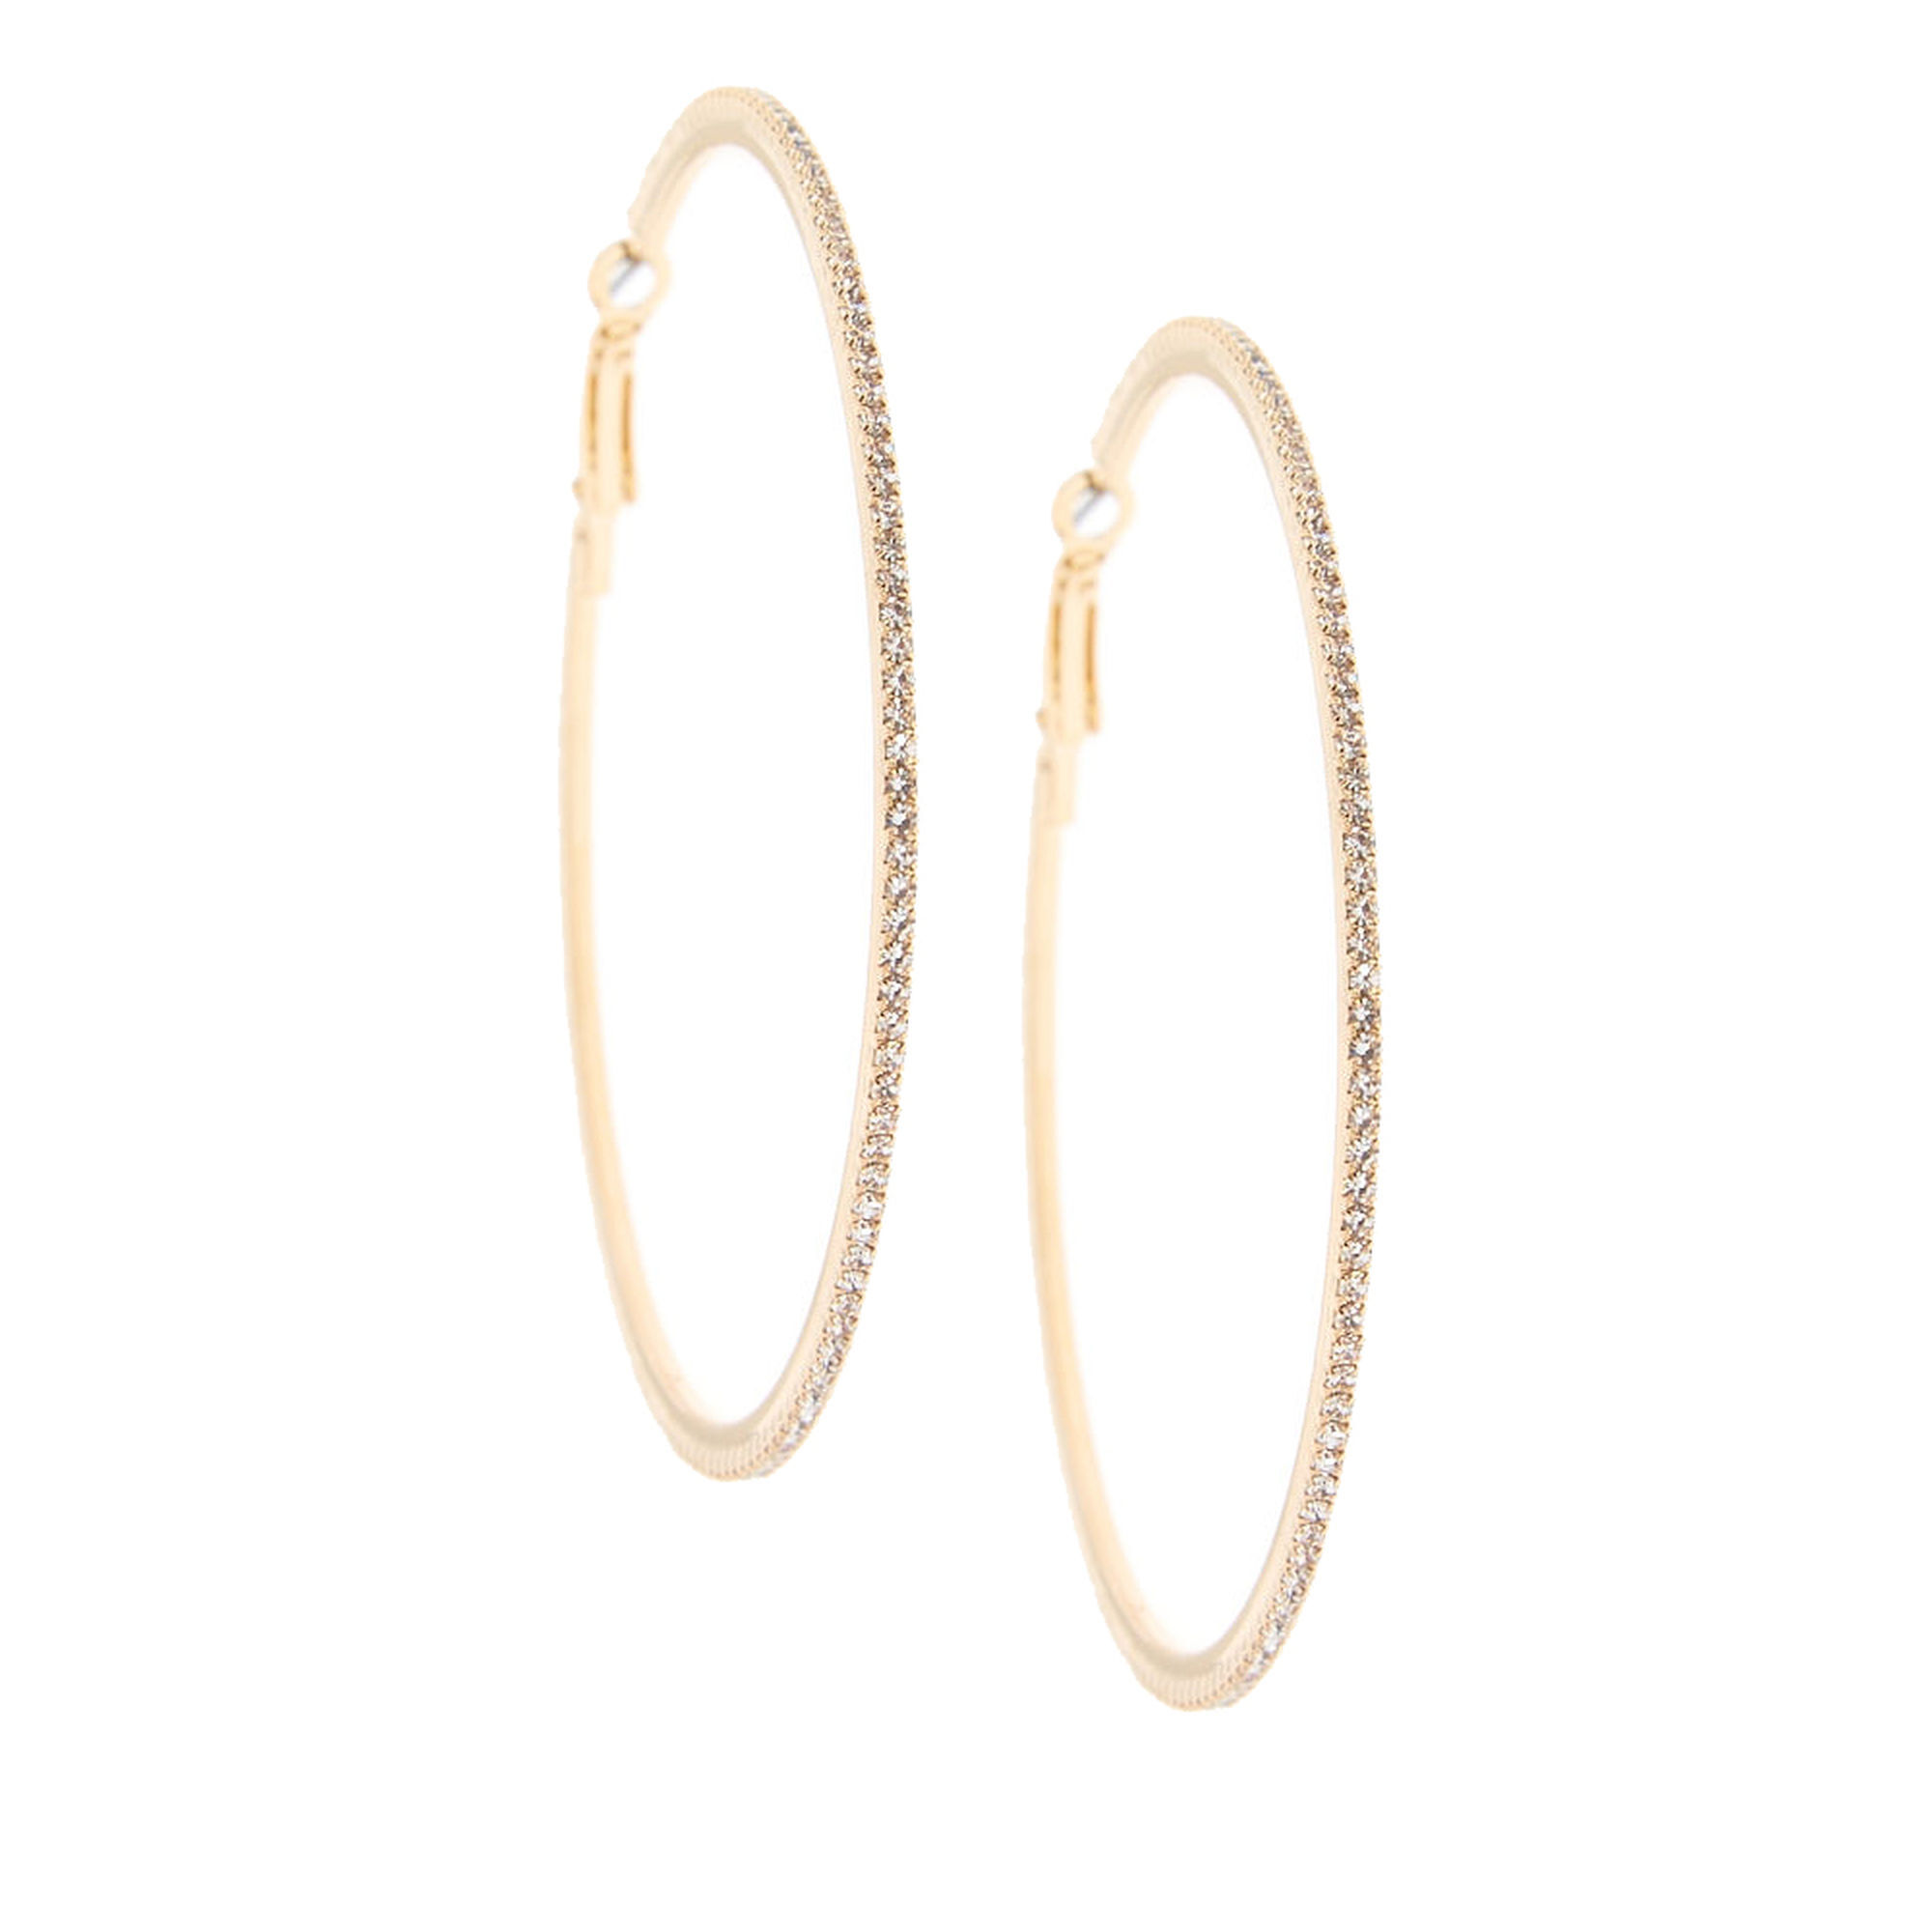 811eaf86a8dd2 70MM Gold-Tone Stone Hoop Earrings